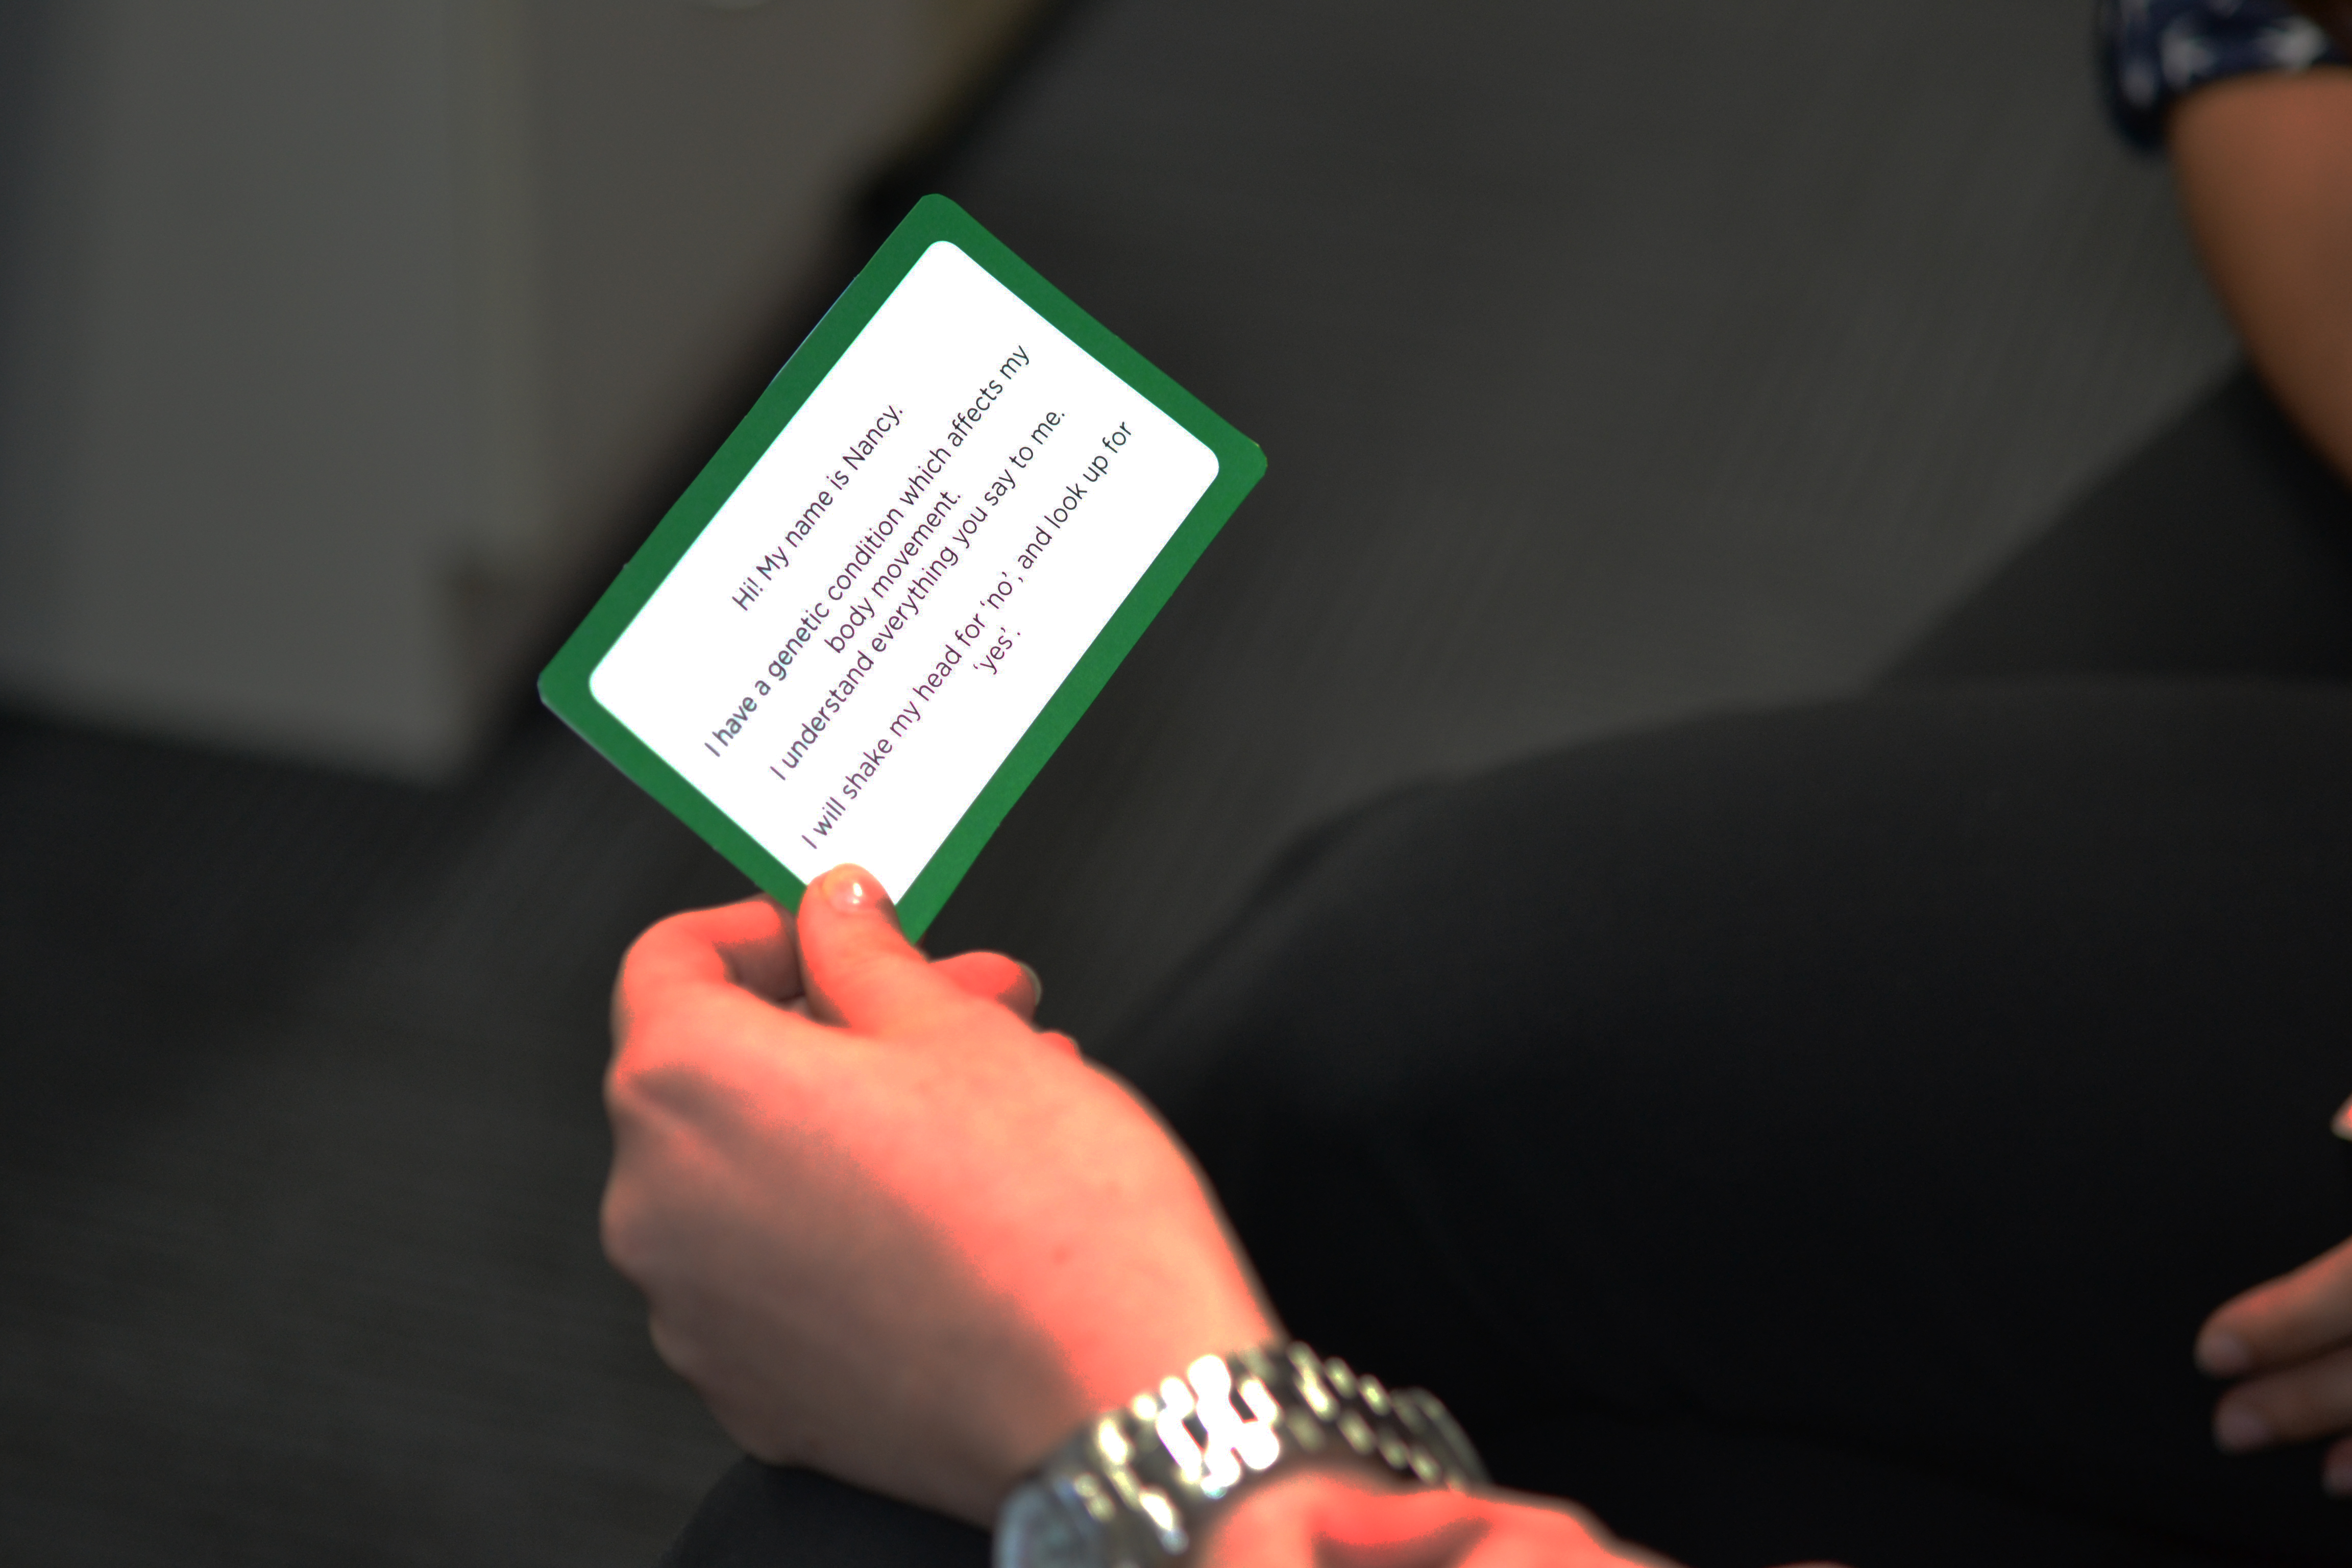 person holding an introduction card which indicates how they communicate